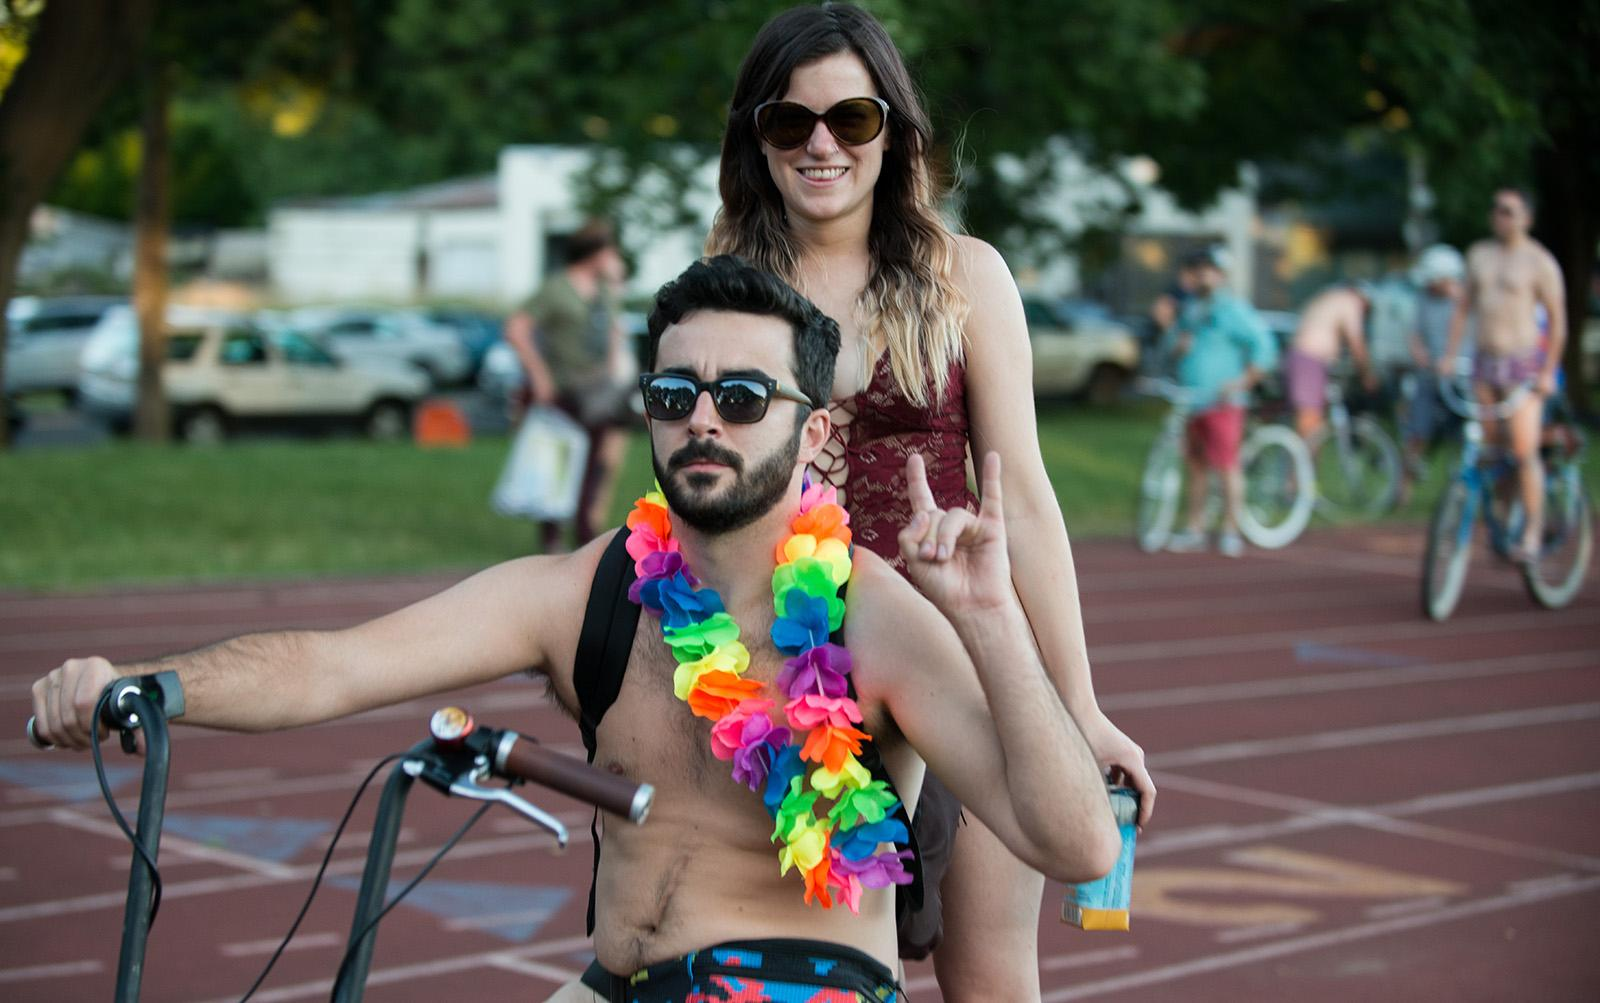 Bare bicyclists filled the streets of Portland on Saturday for the annual World Naked Bike Ride. The ride draws attention to global oil dependancy, promotes body-positive messages, and highlights the vulnerability of cyclists on the roads. The group gathered in Fernhill Park before riding into Southeast Portland. (KATU photo taken 6-24-2017 by Tristan Fortsch)